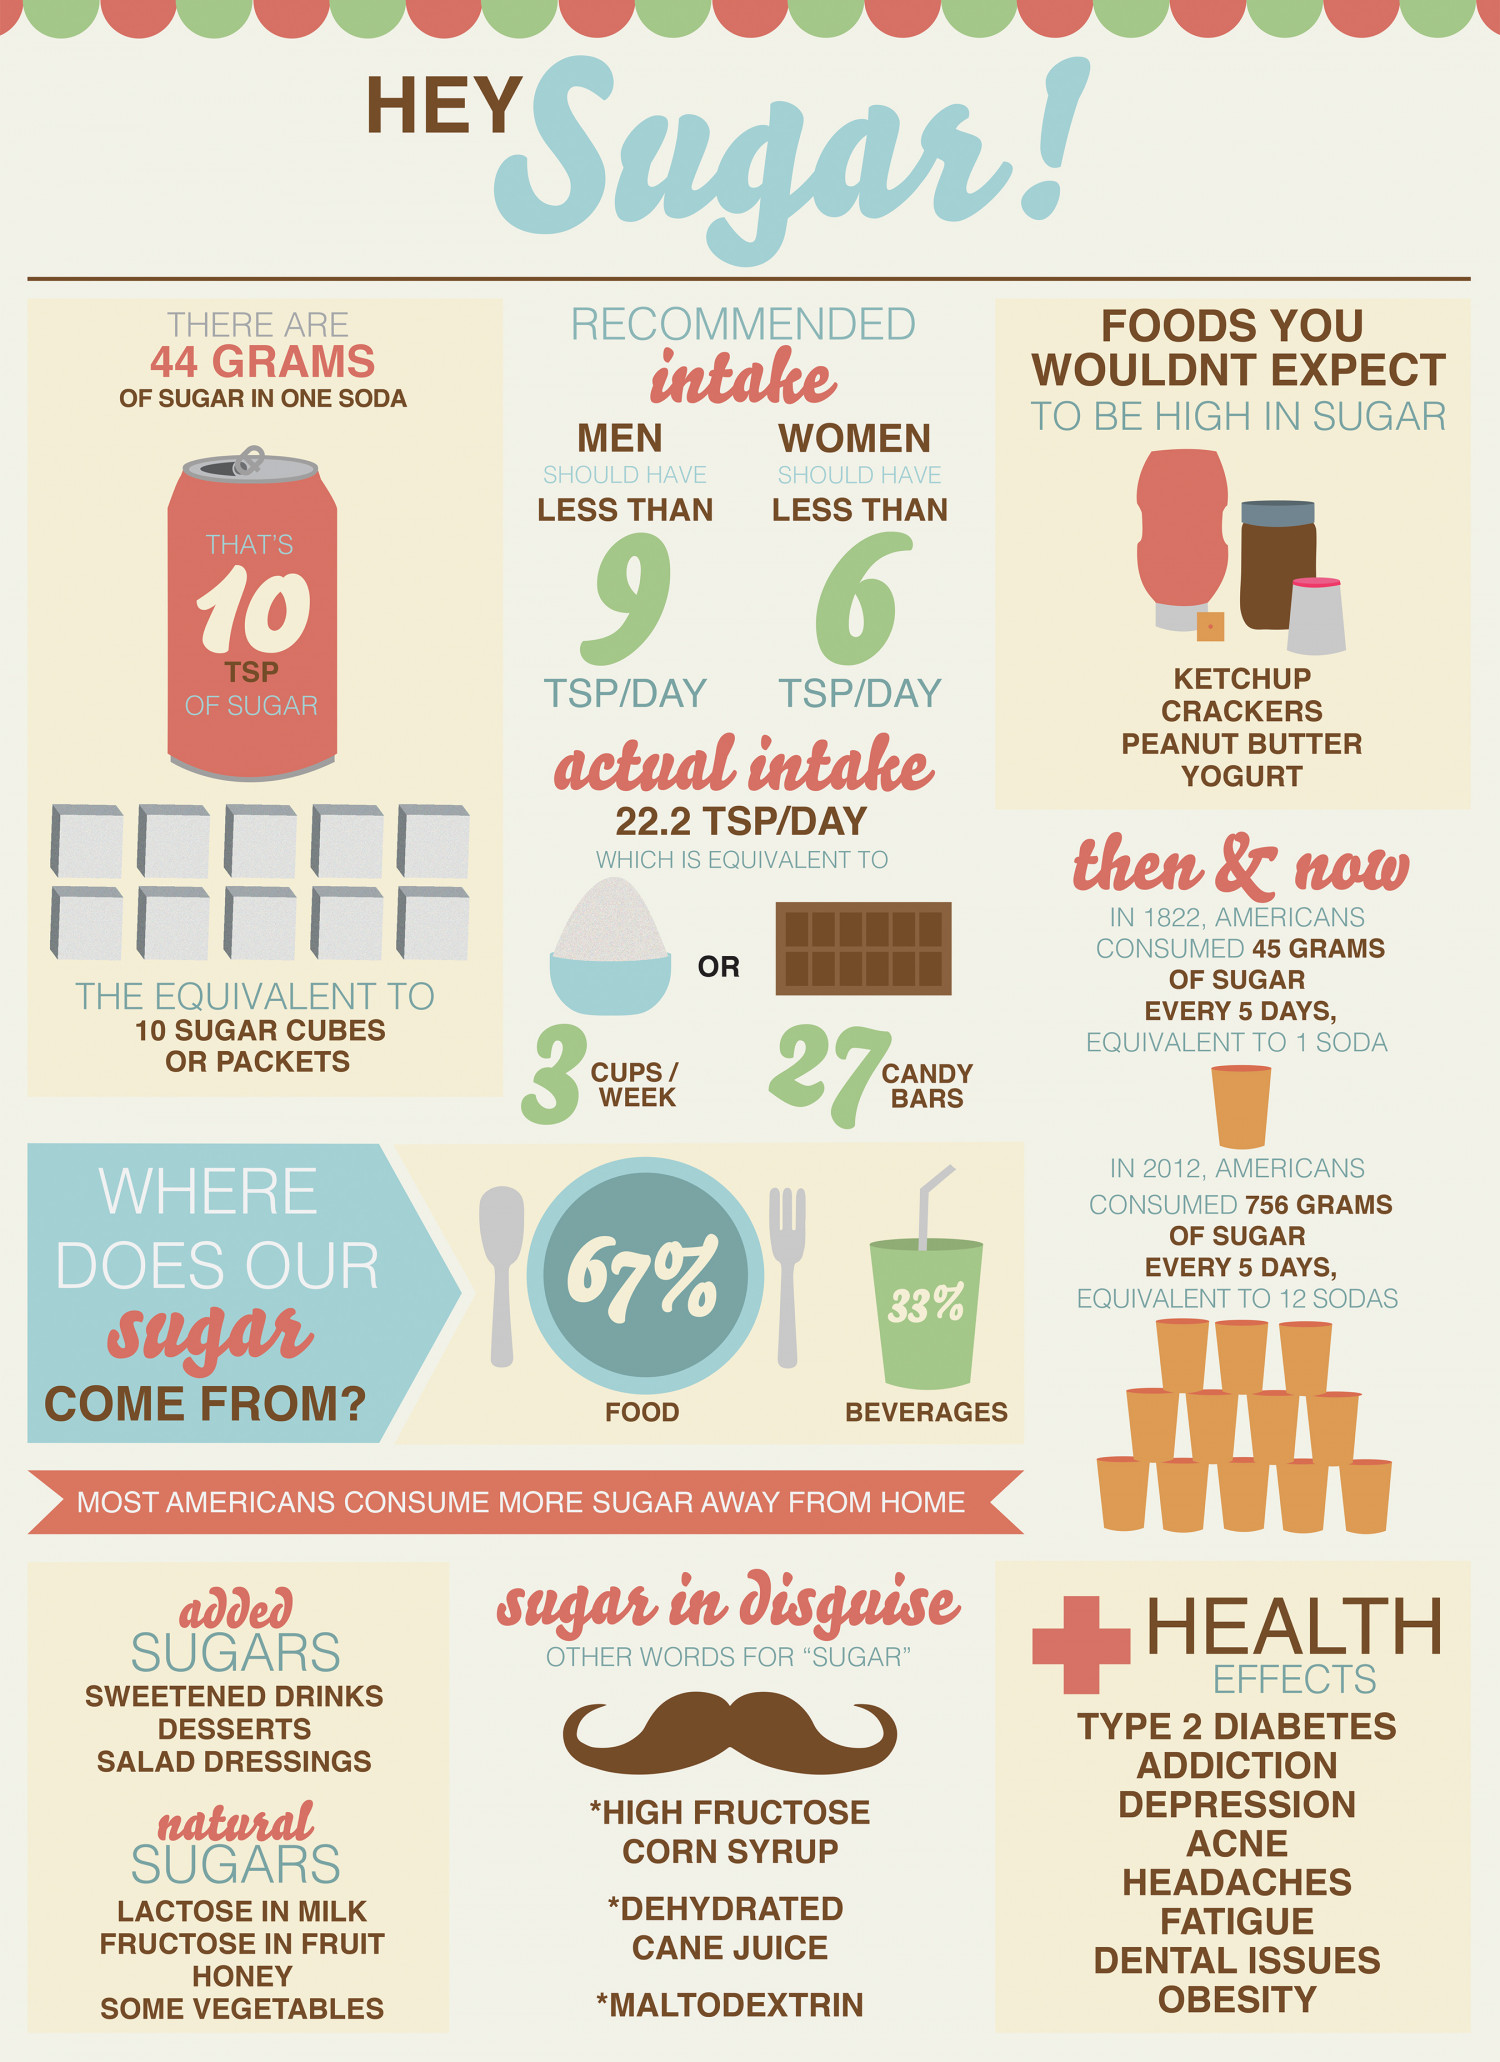 Hey Sugar! Infographic